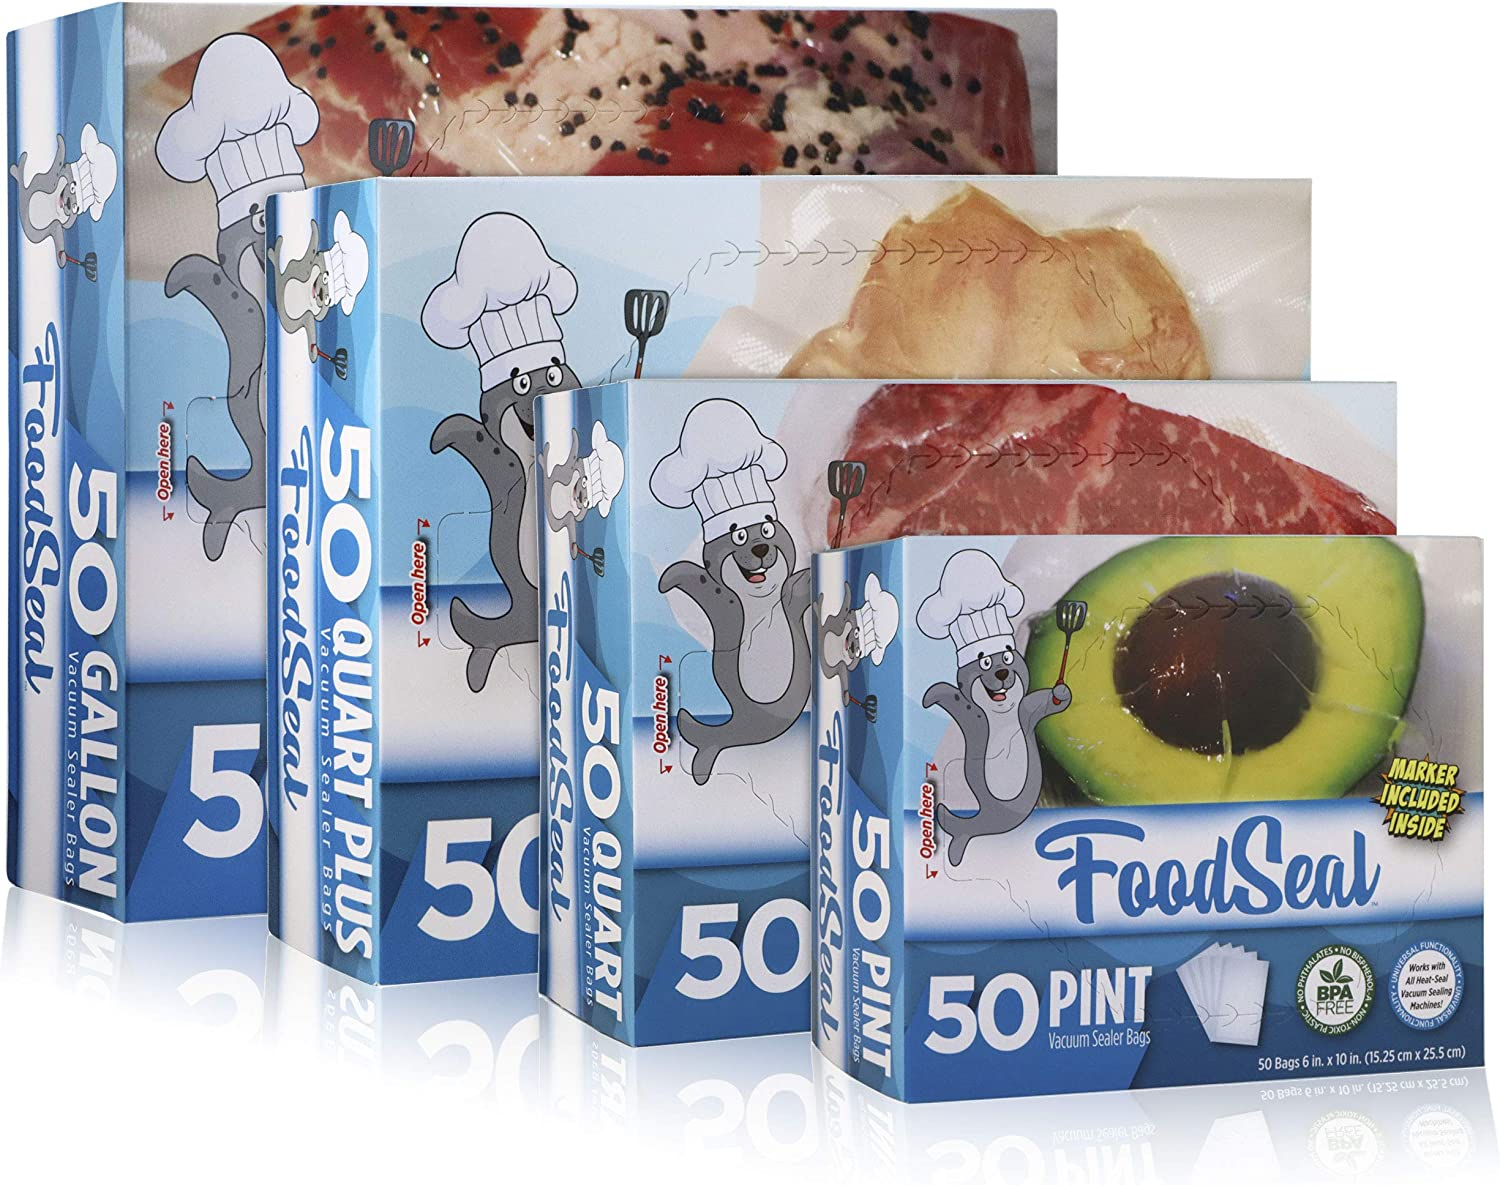 "FoodSeal 50 Pint, 50 Quart, 50 Quart-Plus, and 50 Gallon Vacuum Sealer Bags Ultimate Combo Pack | 6"" x 10"", 8"" x 12"", 10"" x 13"", 11"" x 16"" 